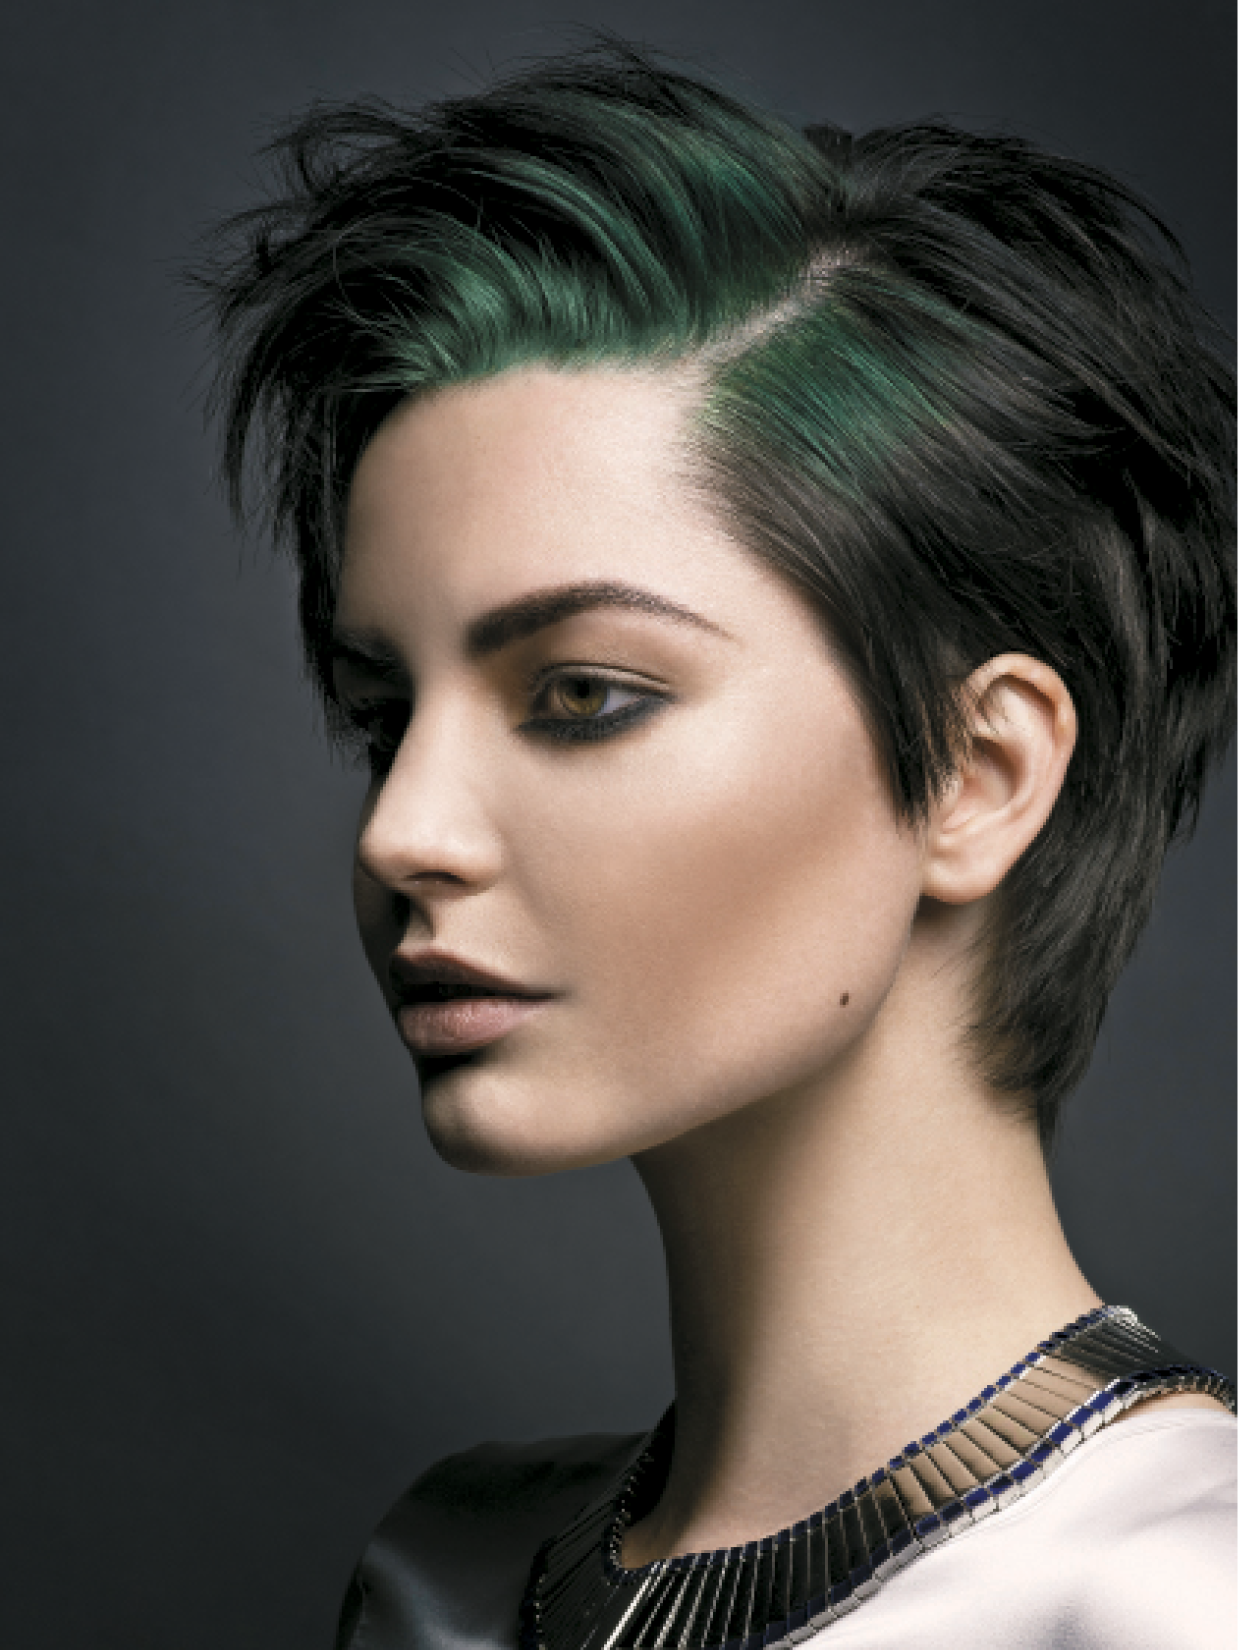 To achieve this look, Baxter pre-lightened the first 2 inches of the hair from the root area, then applied a Goldwell Elumen smoky green hue over the top, creating a subtle glow at the root that fades to natural color.